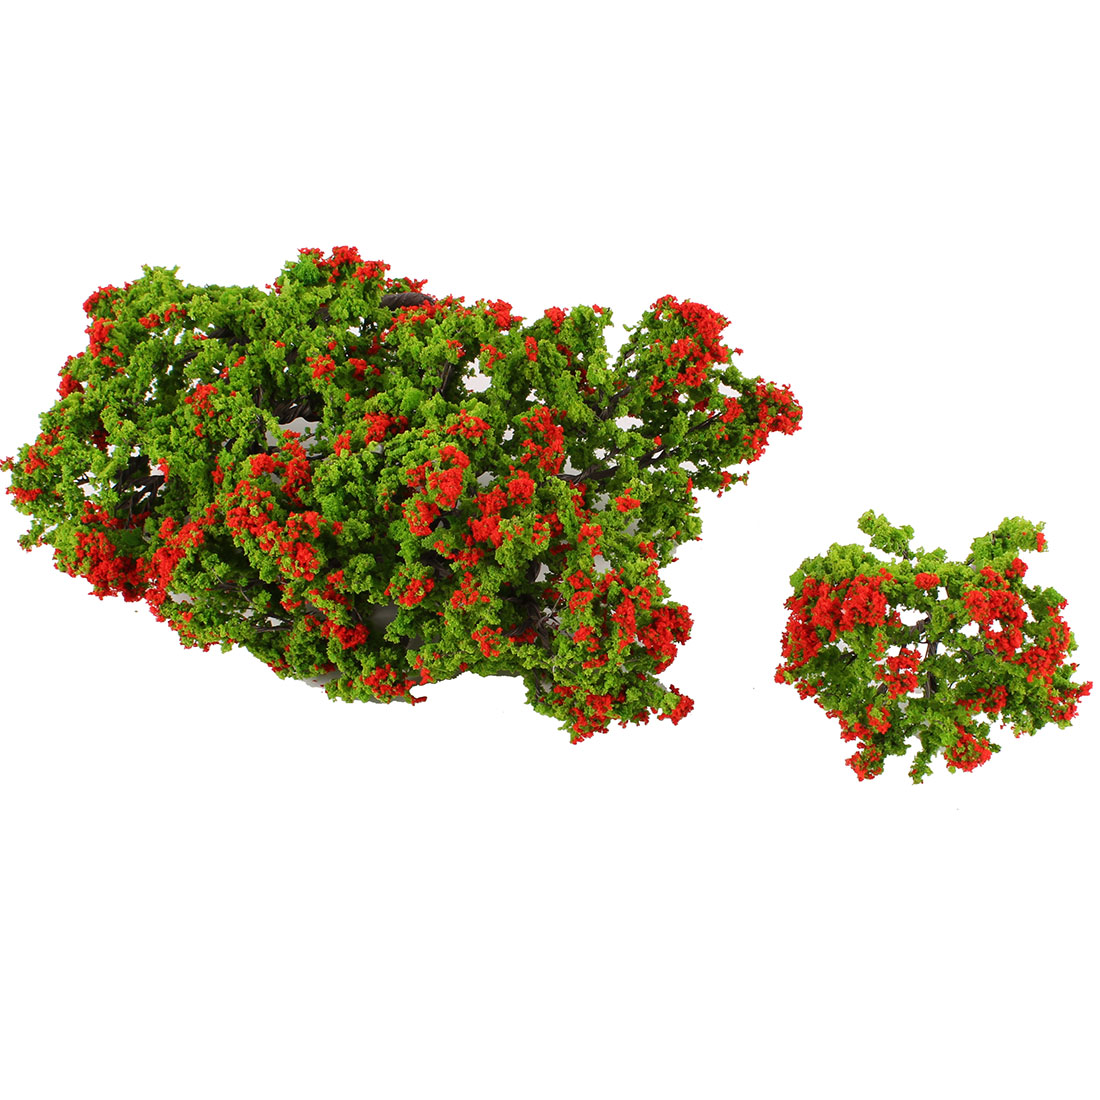 10Pcs Plastic Green Leaf Red Flower Tree Decoration 8.5cm Height 1:100